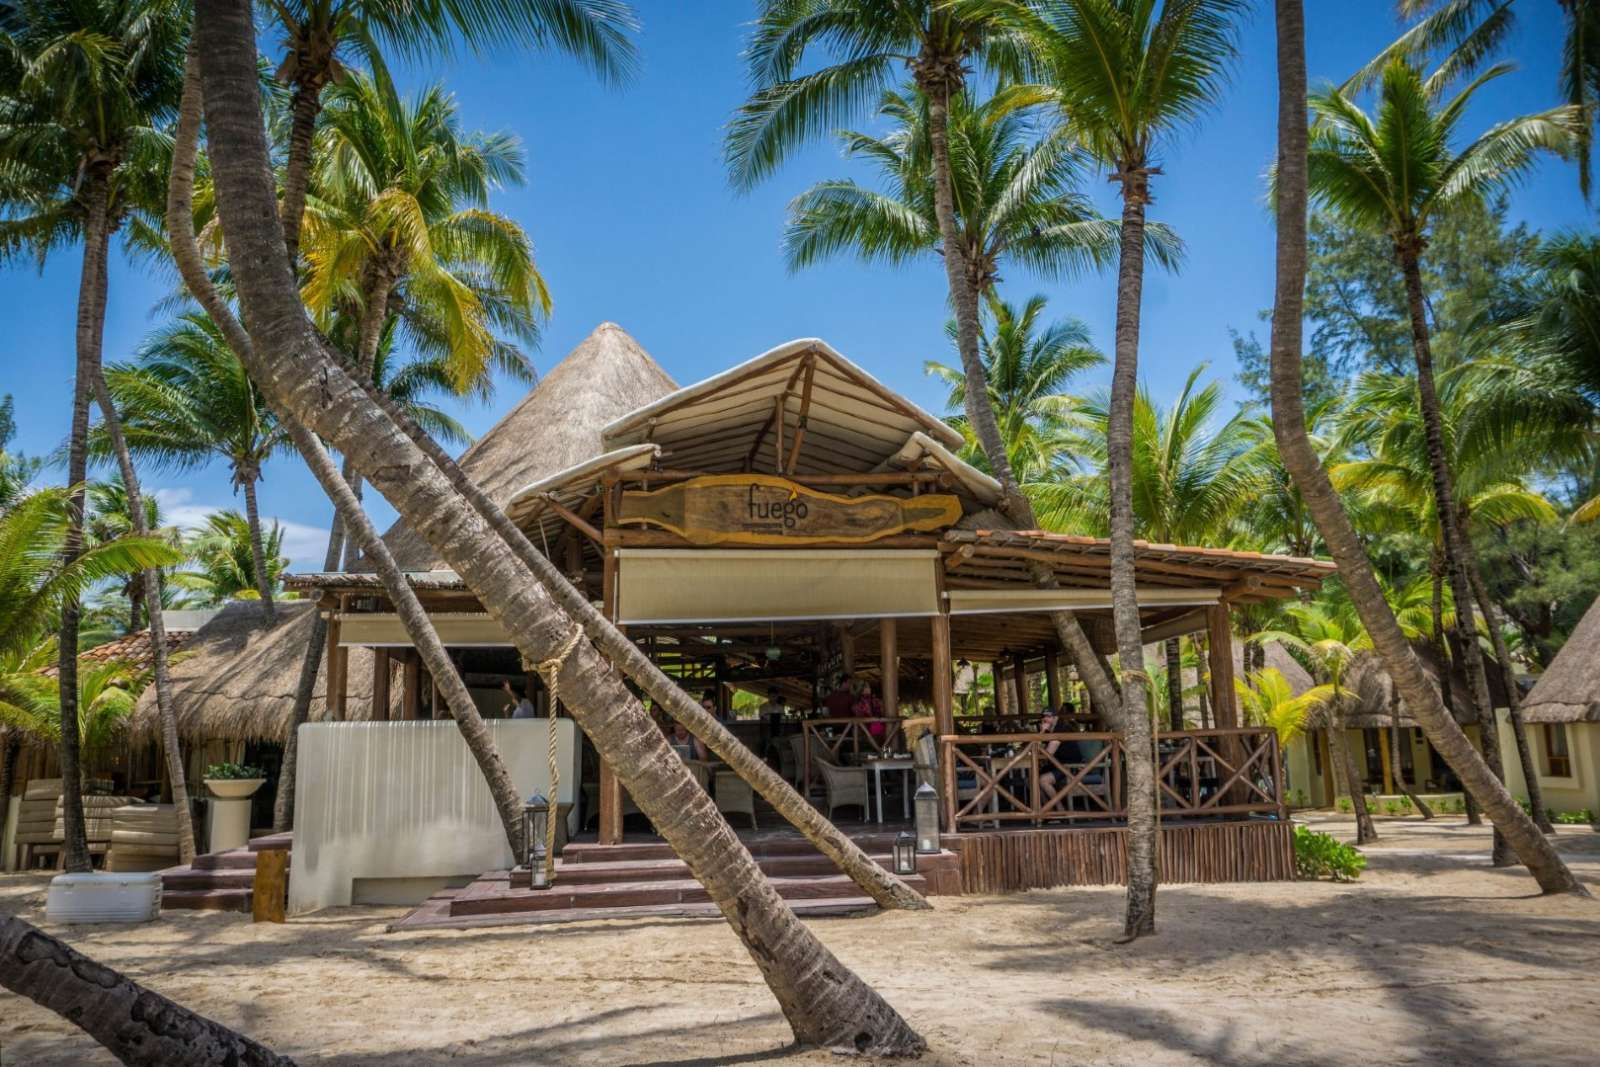 Fuego restaurant at Mahekal Beach Resort